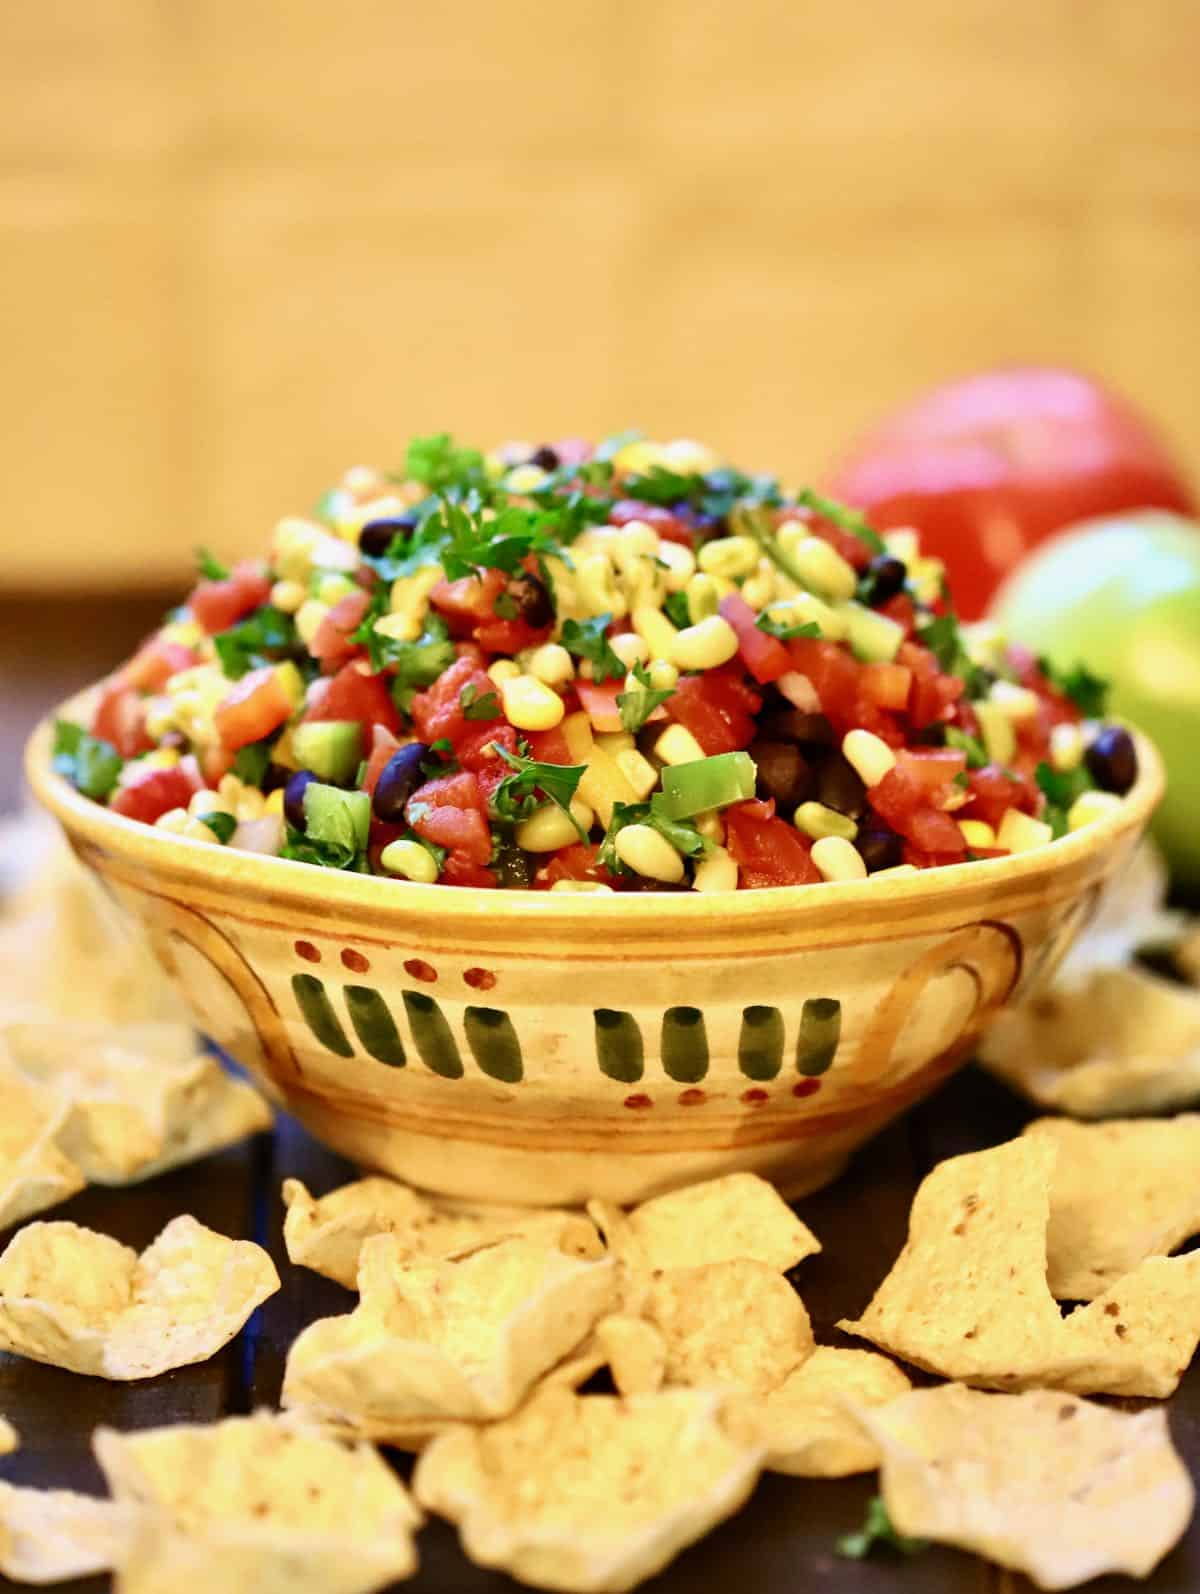 A bowl of redneck caviar dip surrounded by chips.